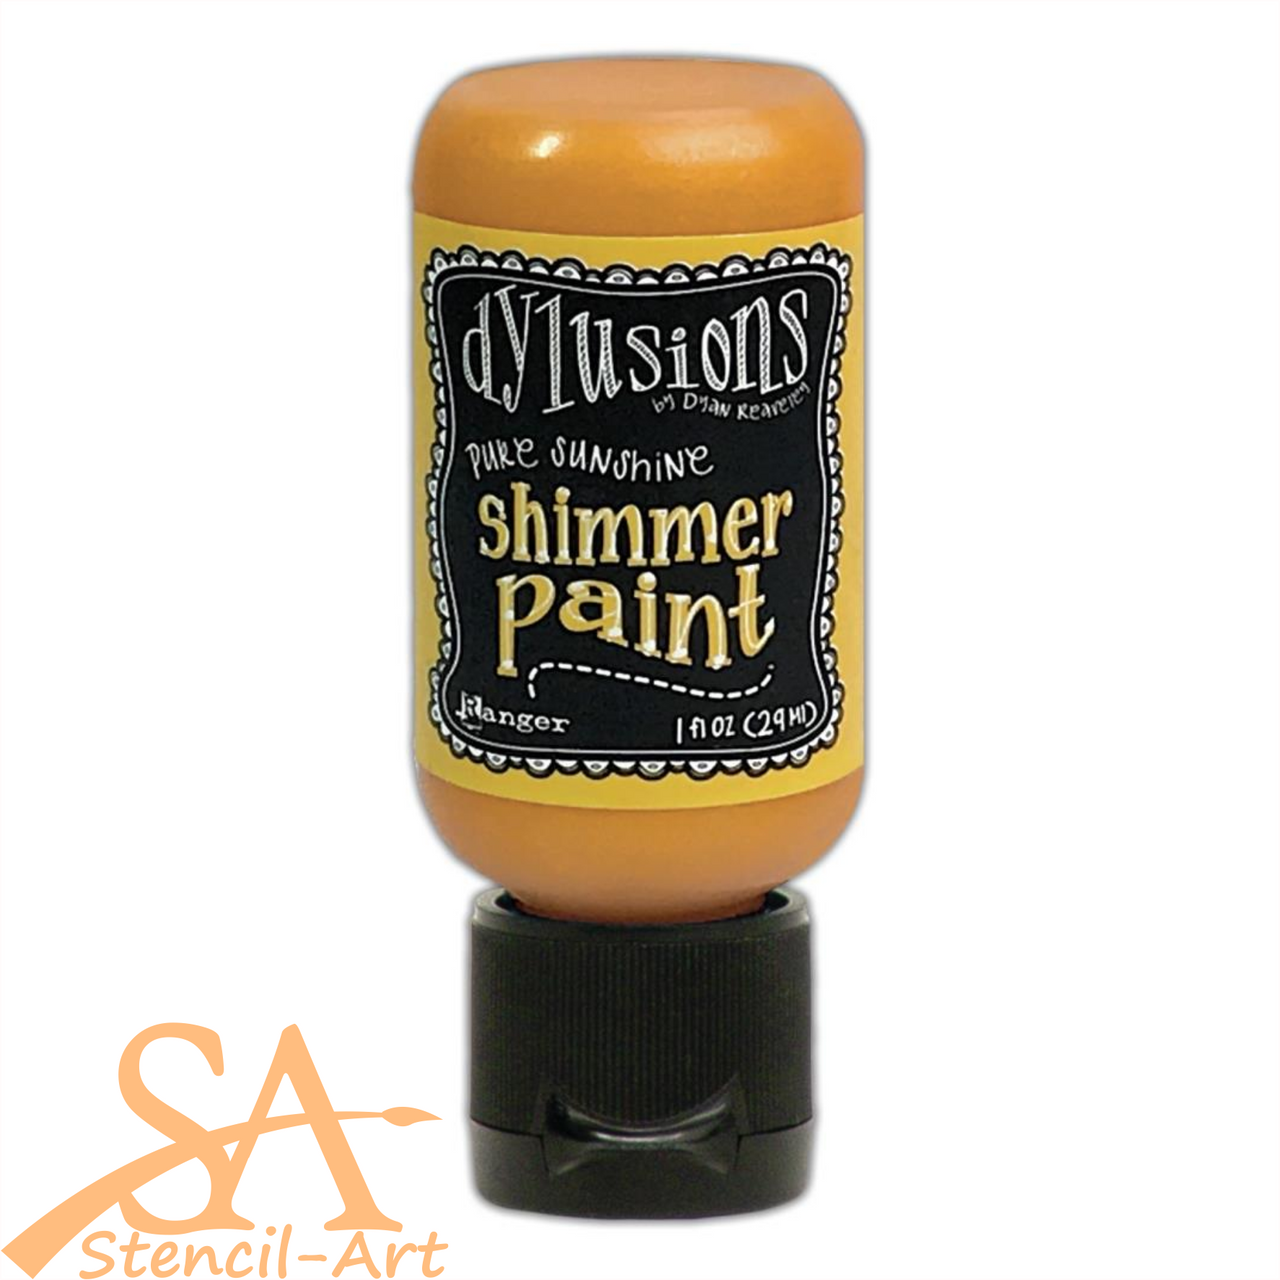 Dyan Reaveley's Dylusions Shimmer Paint 29ml PURE SUNSHINE #DYU74465